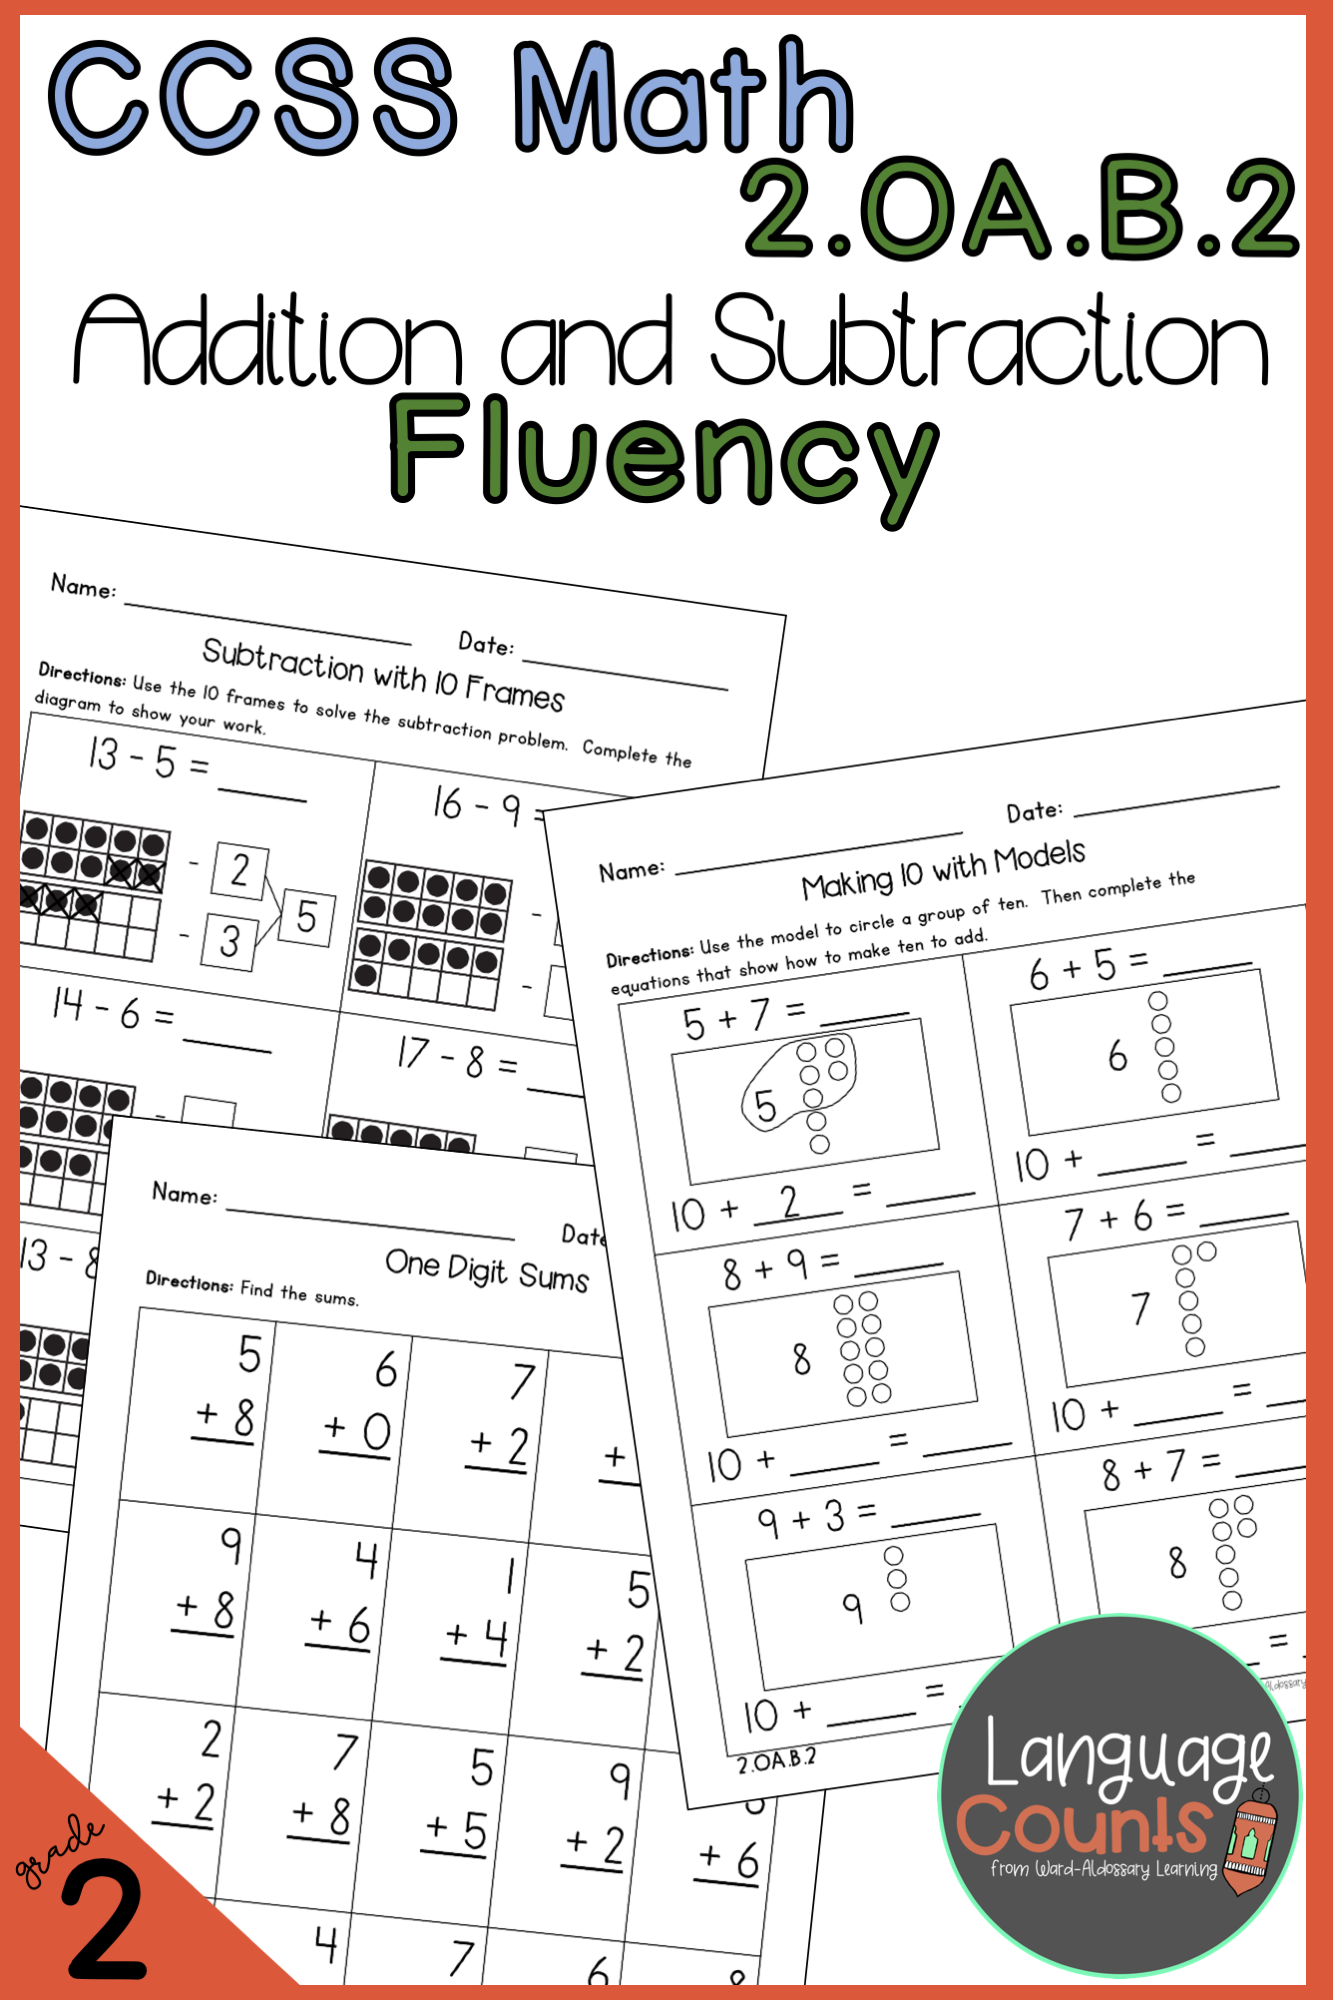 Practice Fluency Strategies For Addition And Subtraction Within 20 Such As Decomposing Numbers Making Addition And Subtraction Subtraction Second Grade Math [ 2000 x 1333 Pixel ]